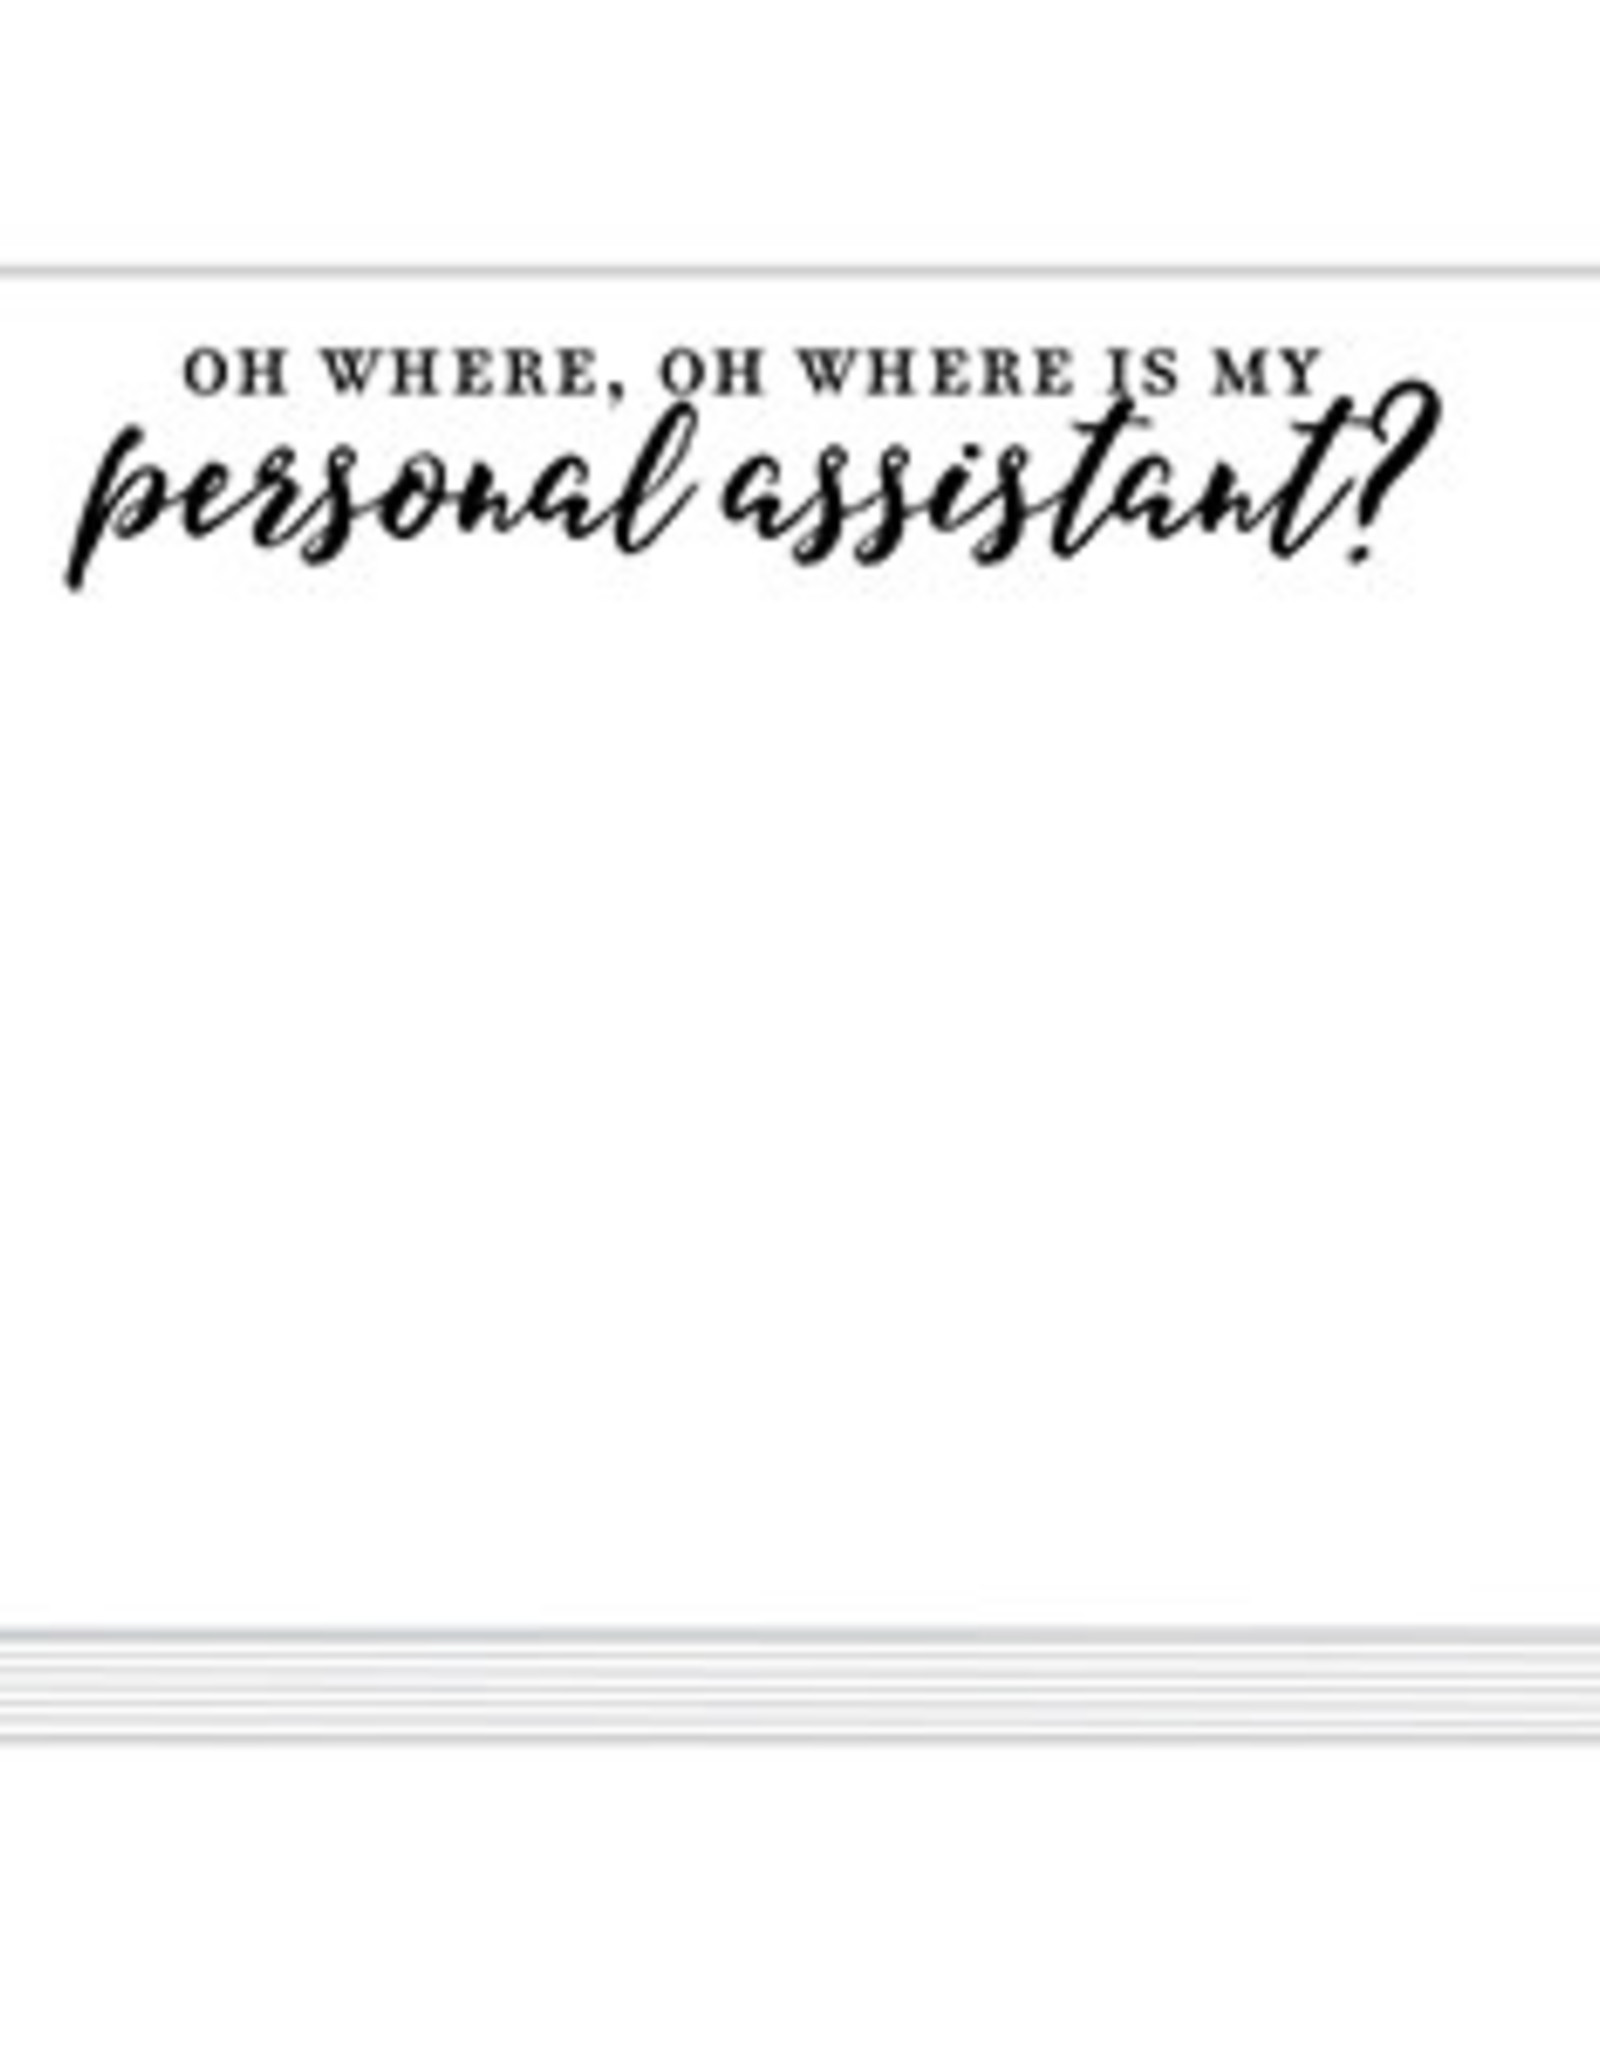 Roseanne Beck Mini Slab Pad- Oh Where, Oh Where My Assistant